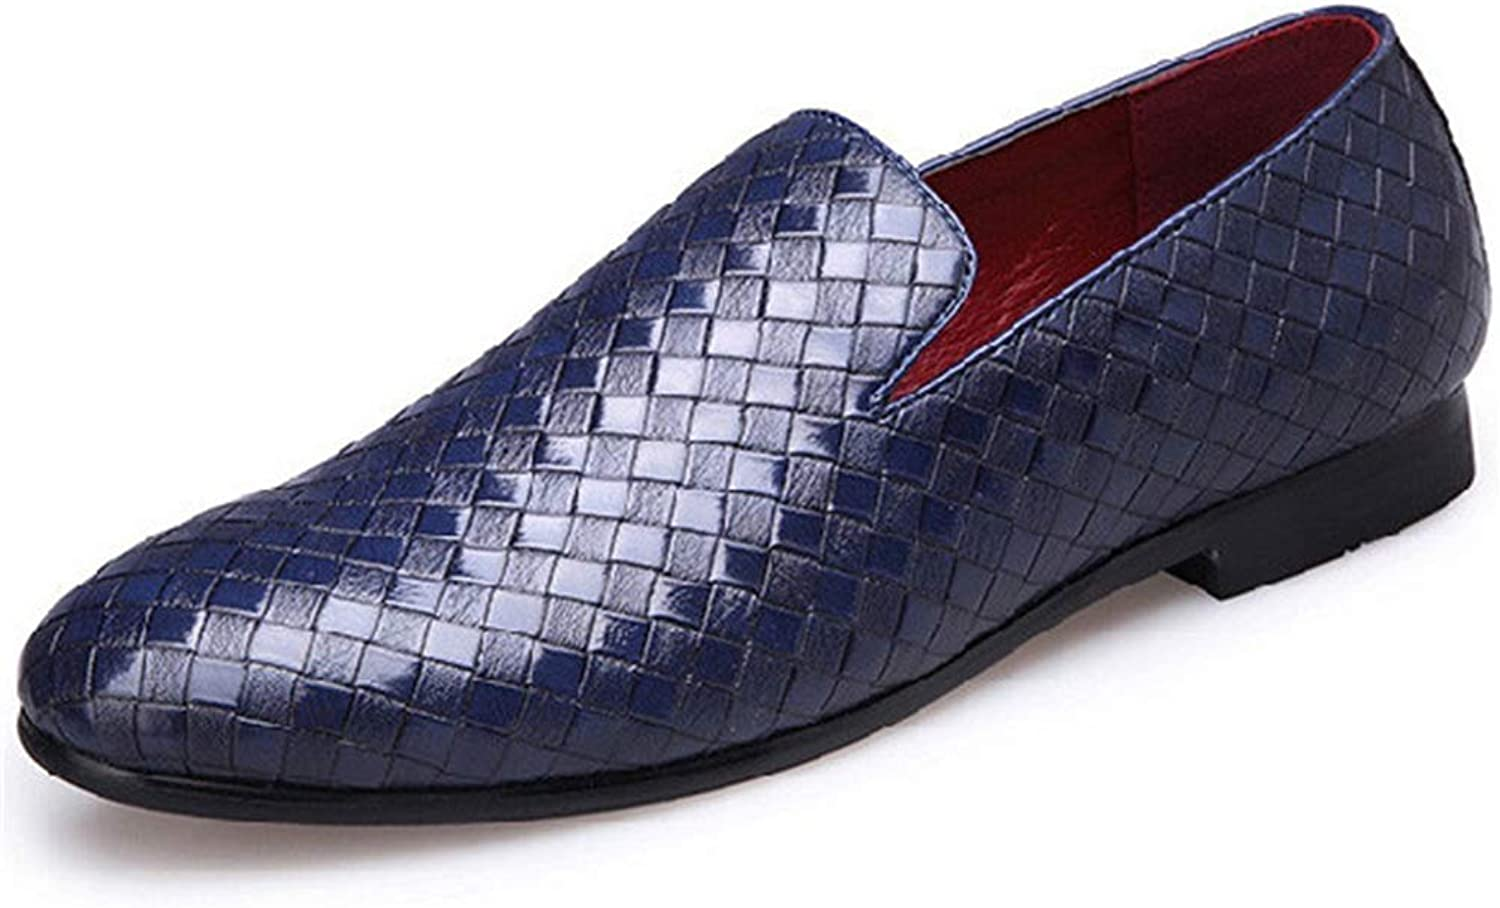 ZHRUI Men Leather shoes Weave Dress Loafers Slip On Male Casual shoes (color   bluee, Size   8 UK=41 EU)